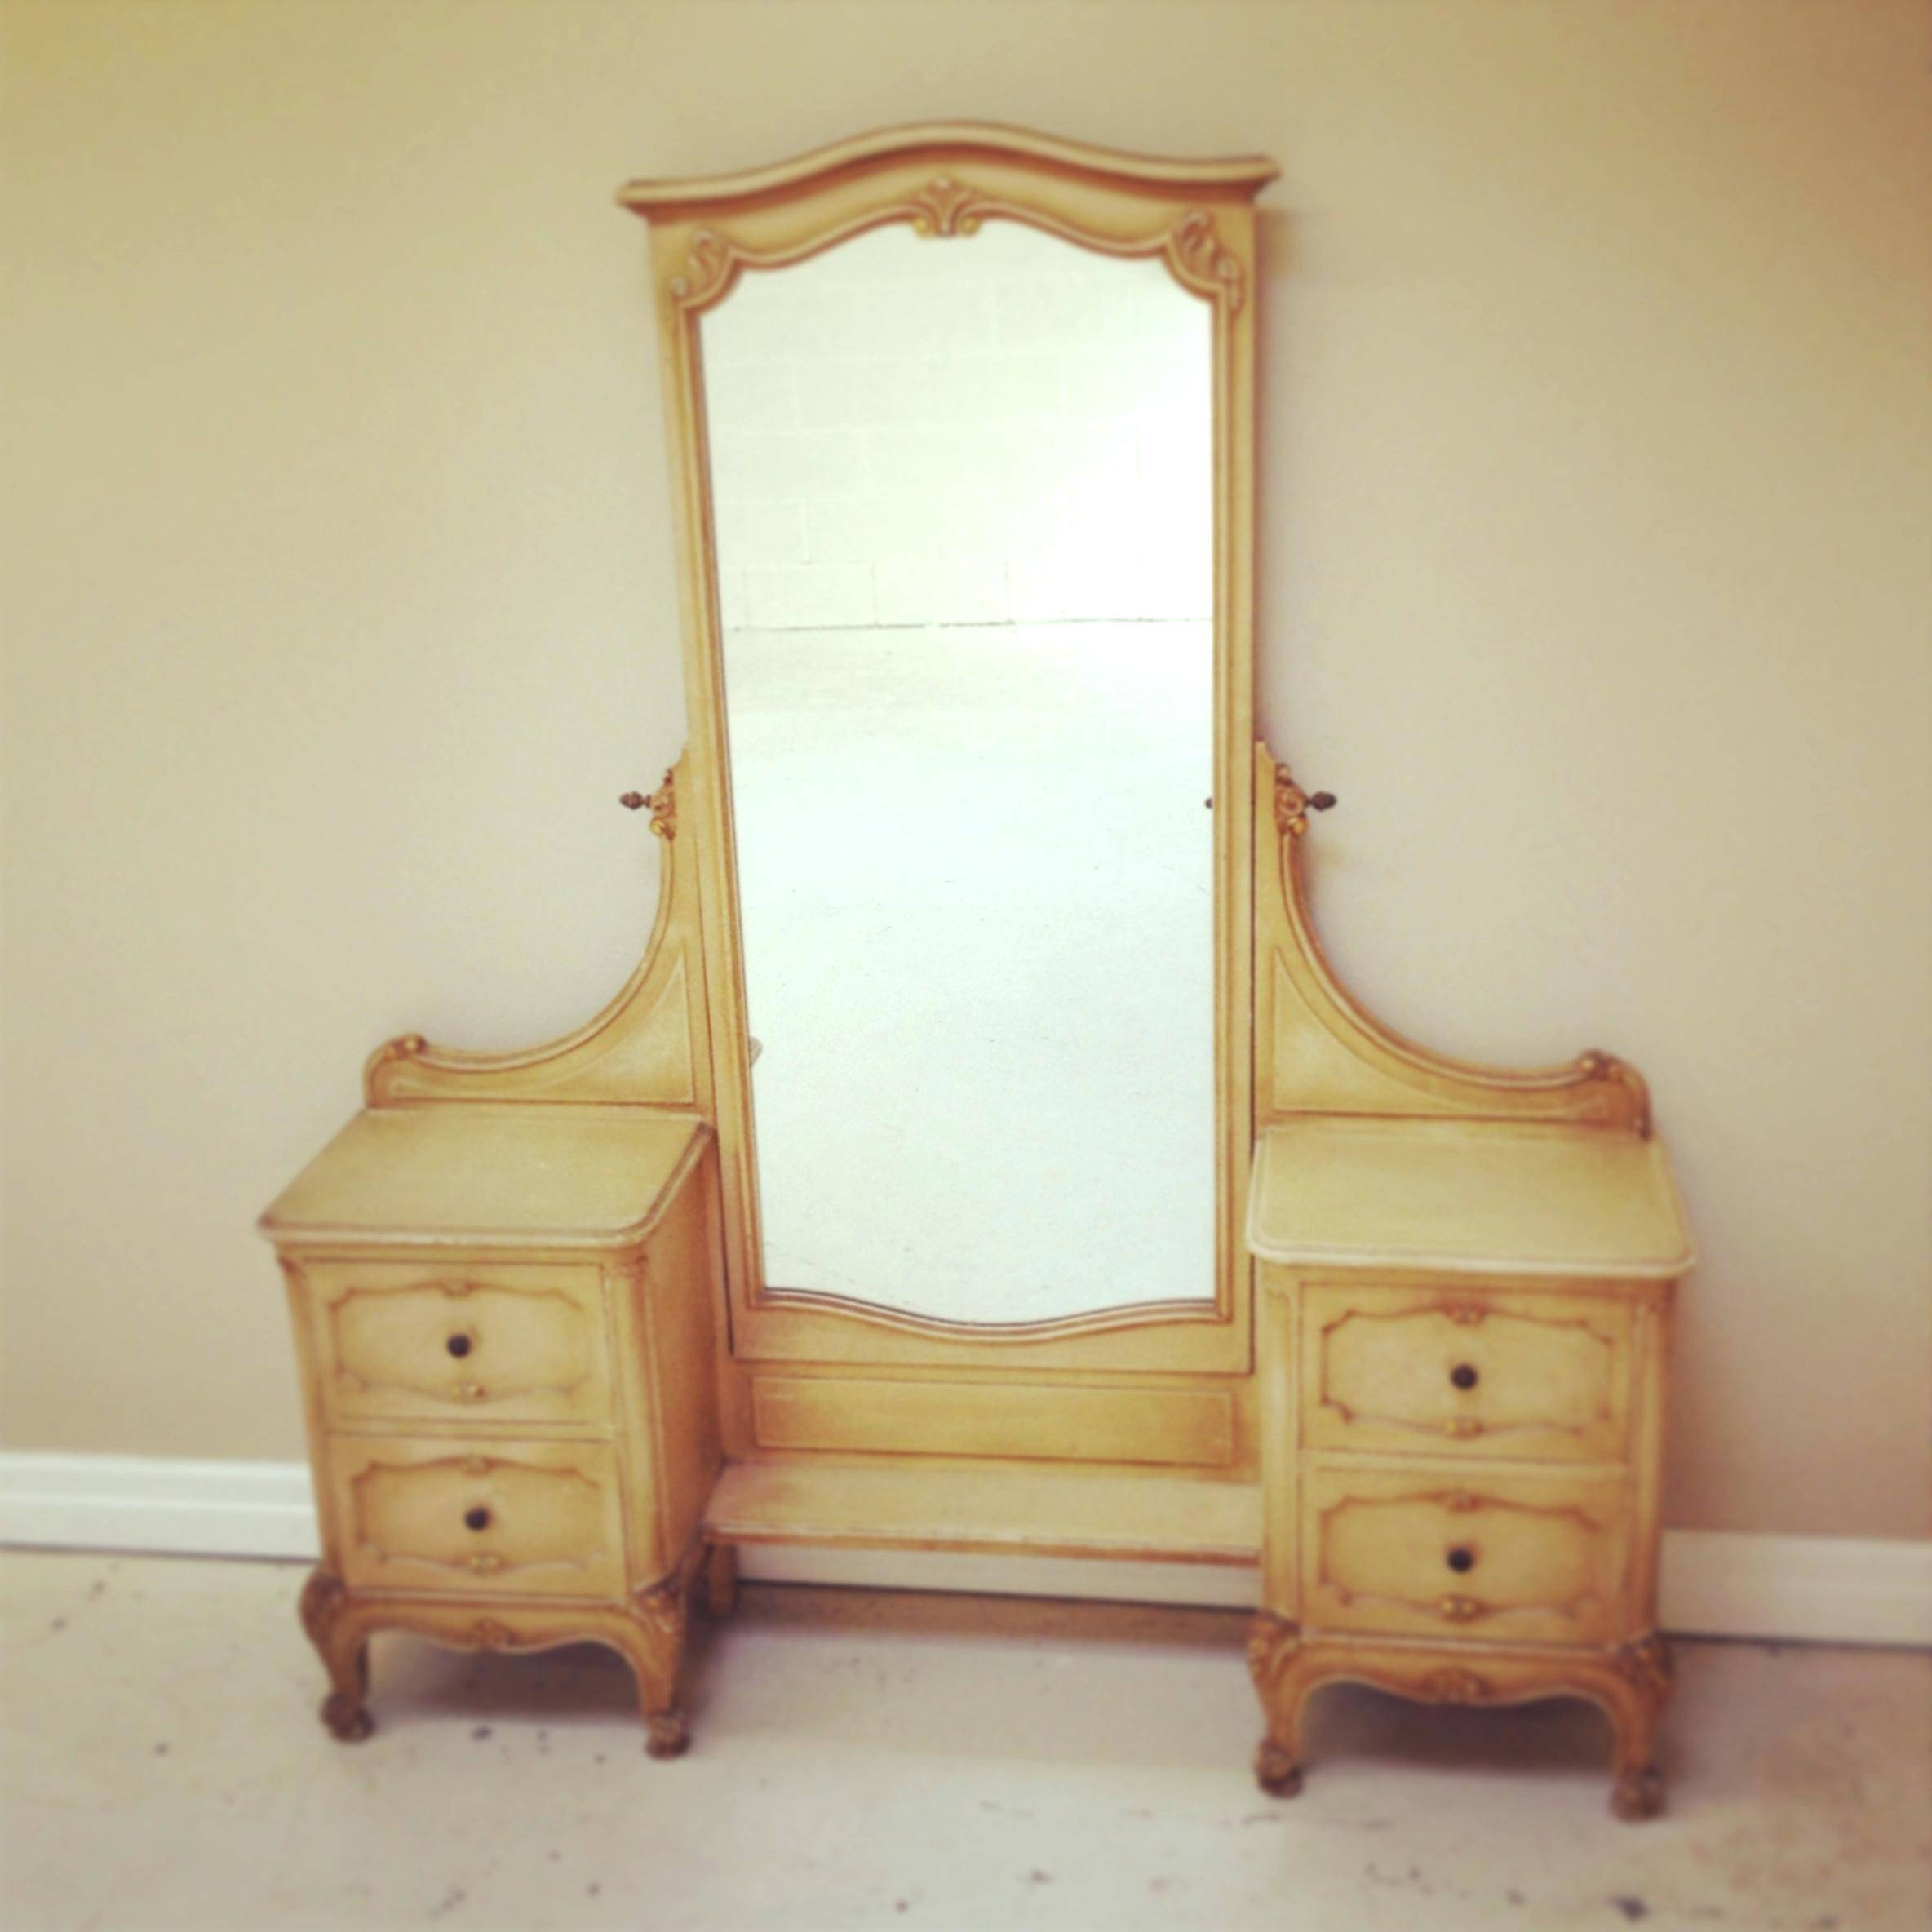 Vintage French Dressing Table Long Mirrorlarge Mirror On Stand within Vintage Full Length Mirrors (Image 22 of 25)